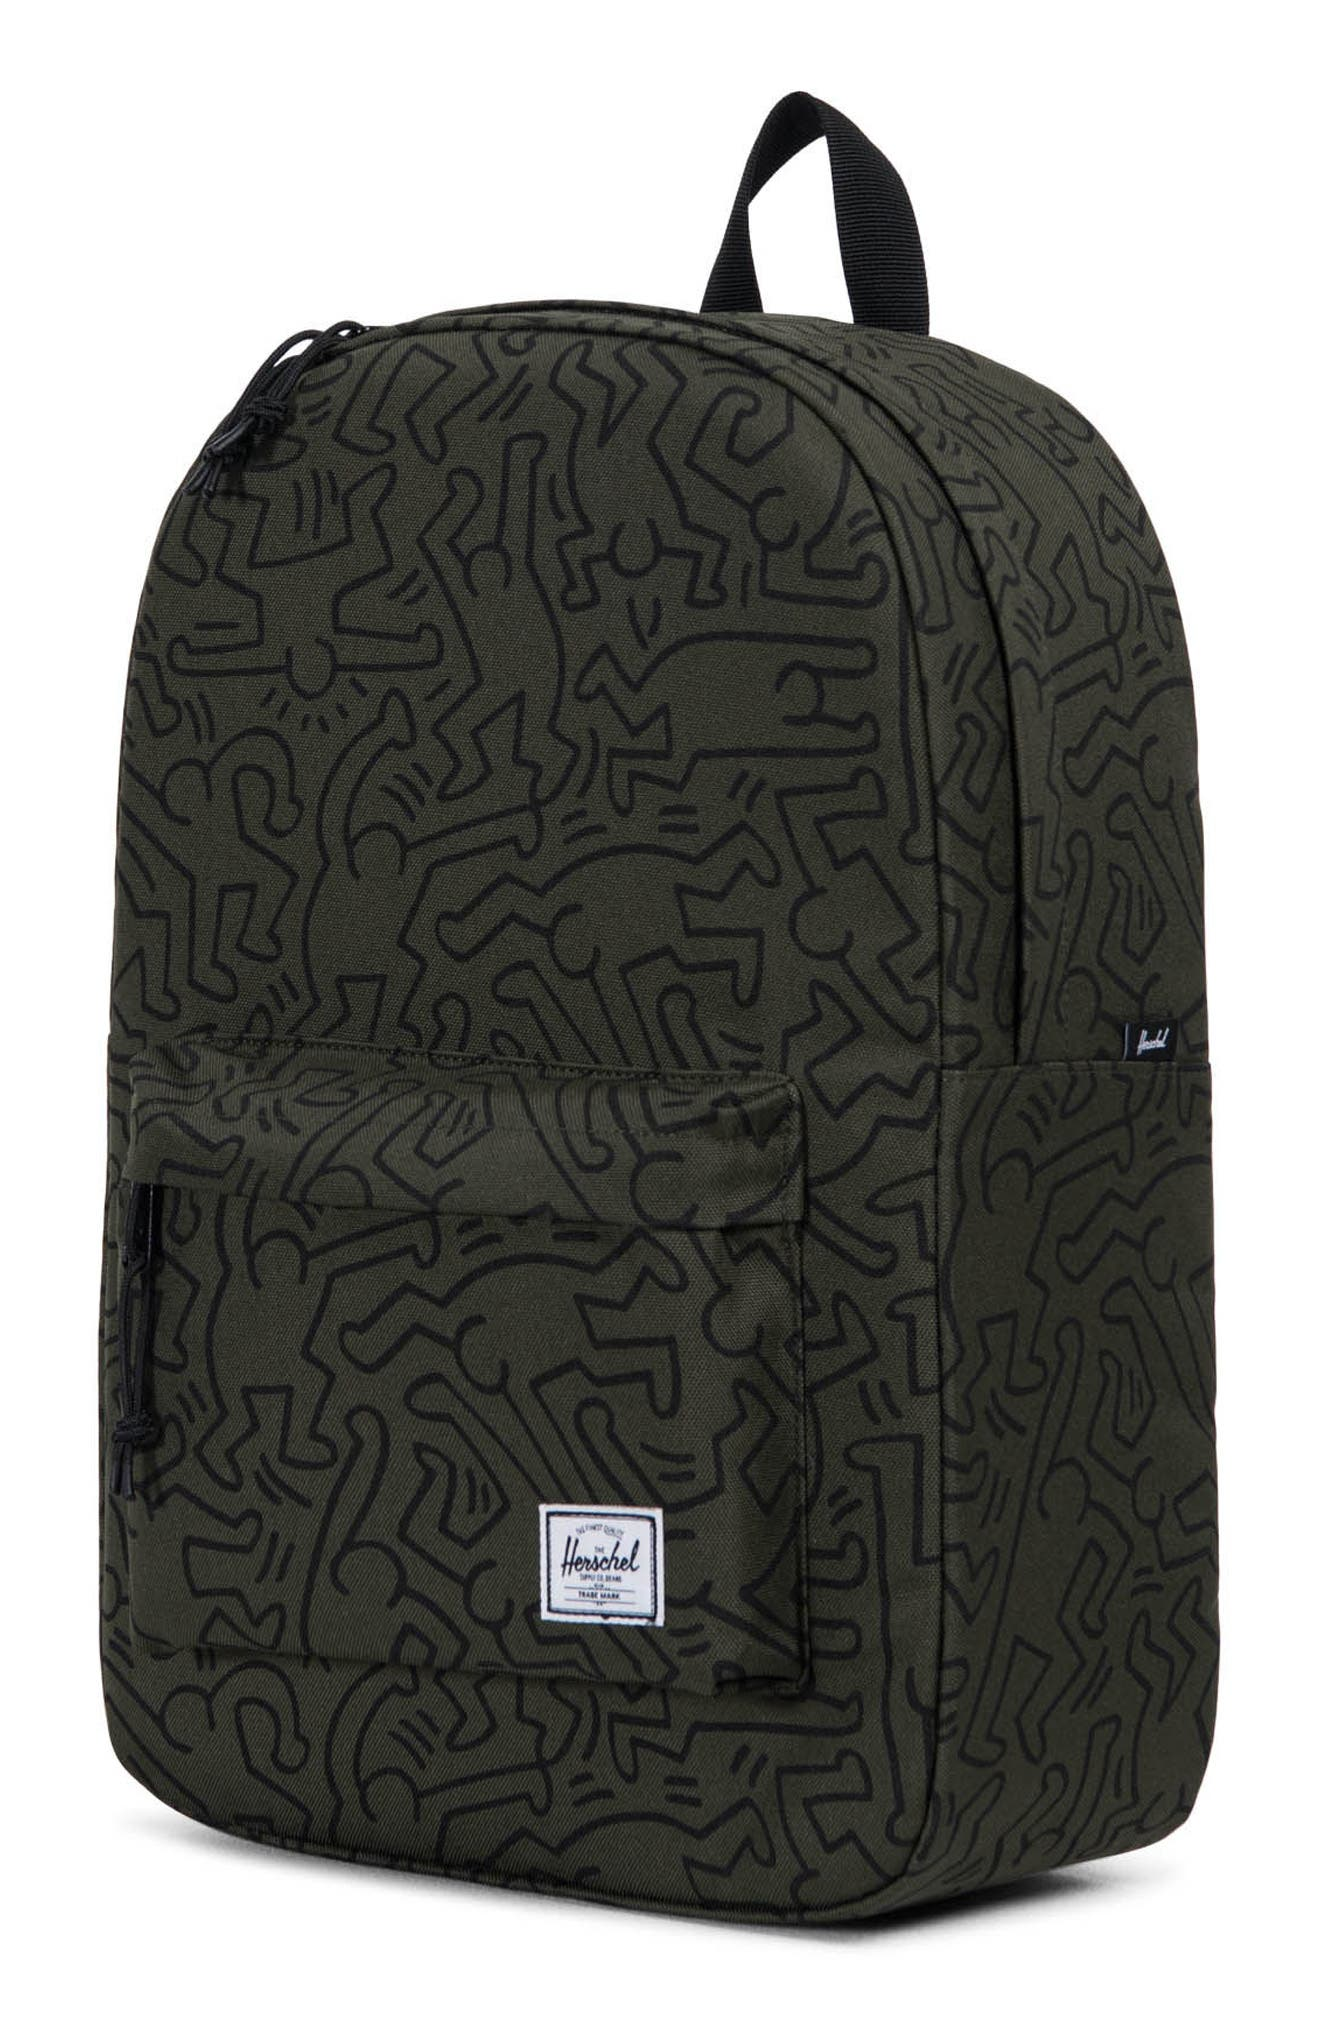 Winlaw x Keith Haring Backpack,                         Main,                         color,